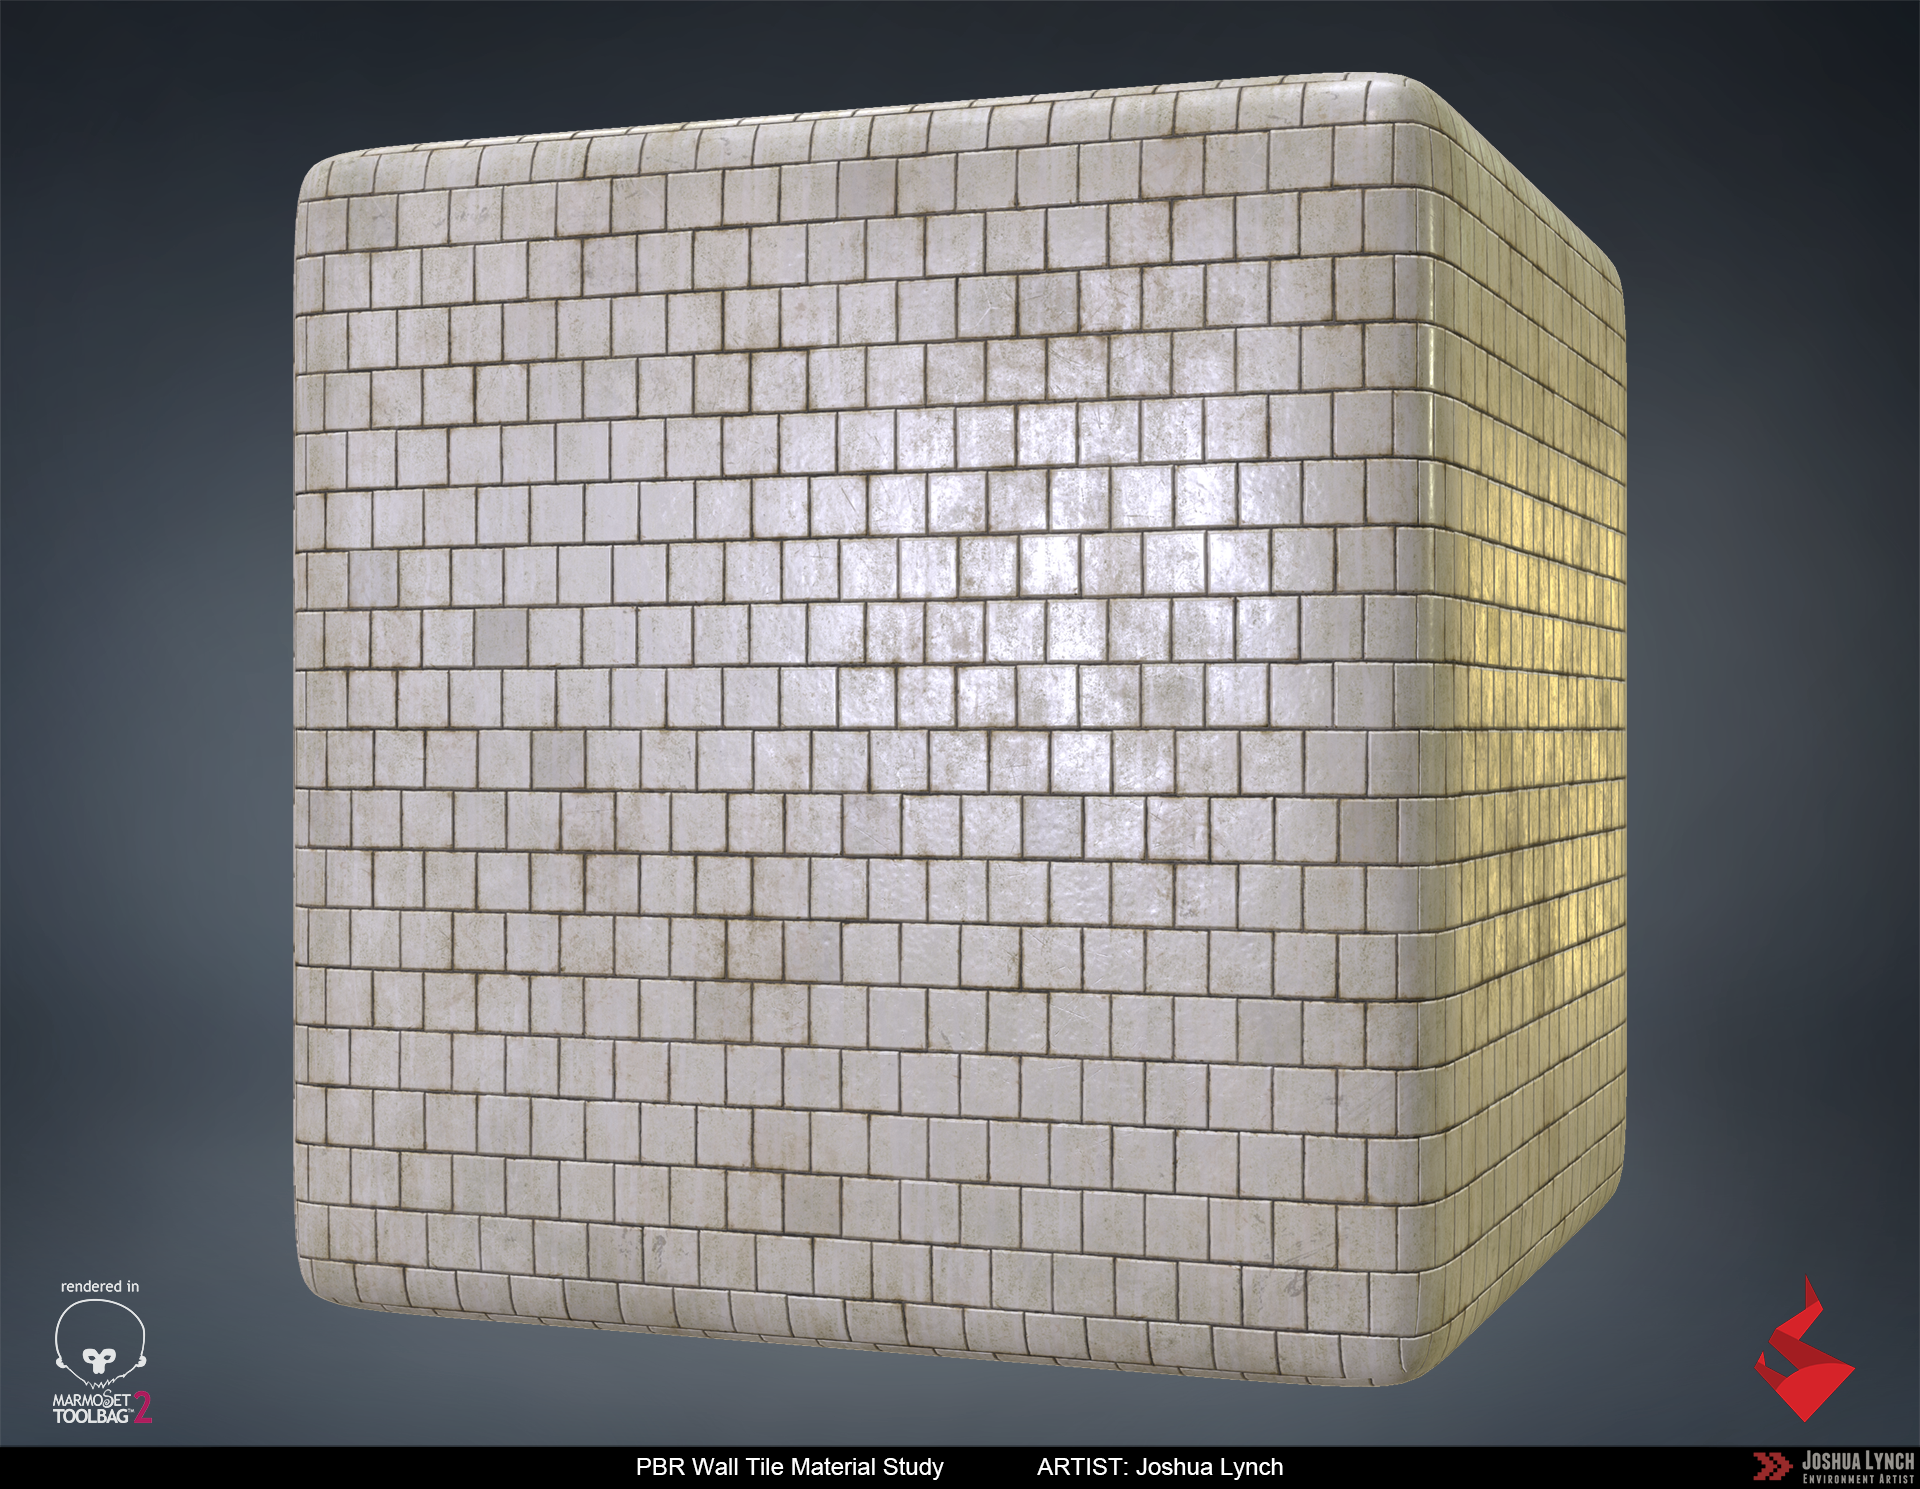 Subway_Wall_Tile_Cube_Small_Layout_Comp_Josh_Lynch.png